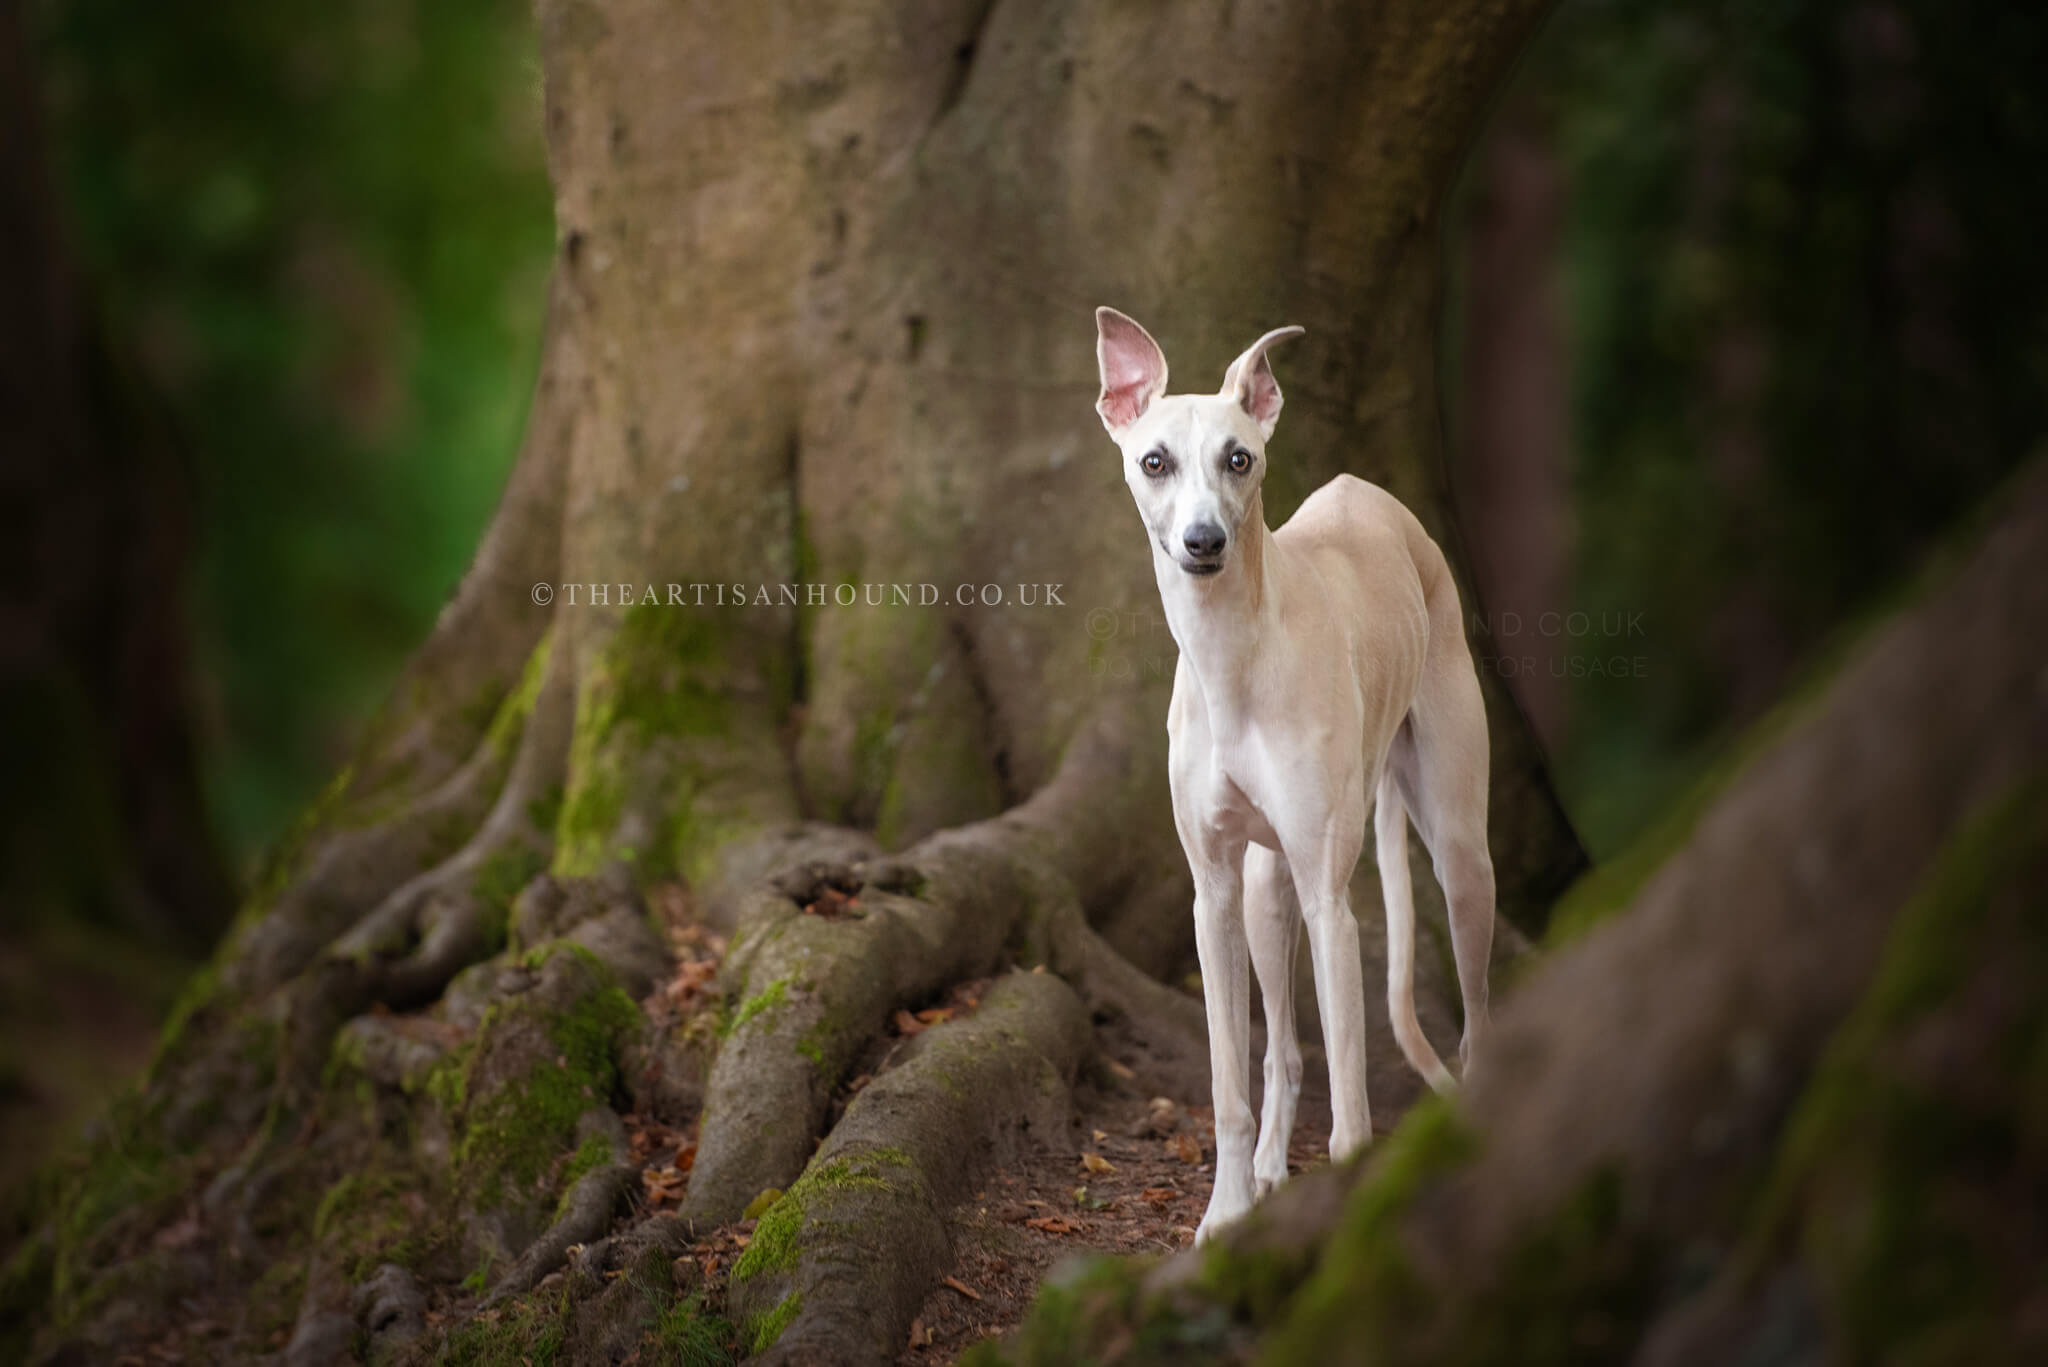 Whippet dog standing by tree